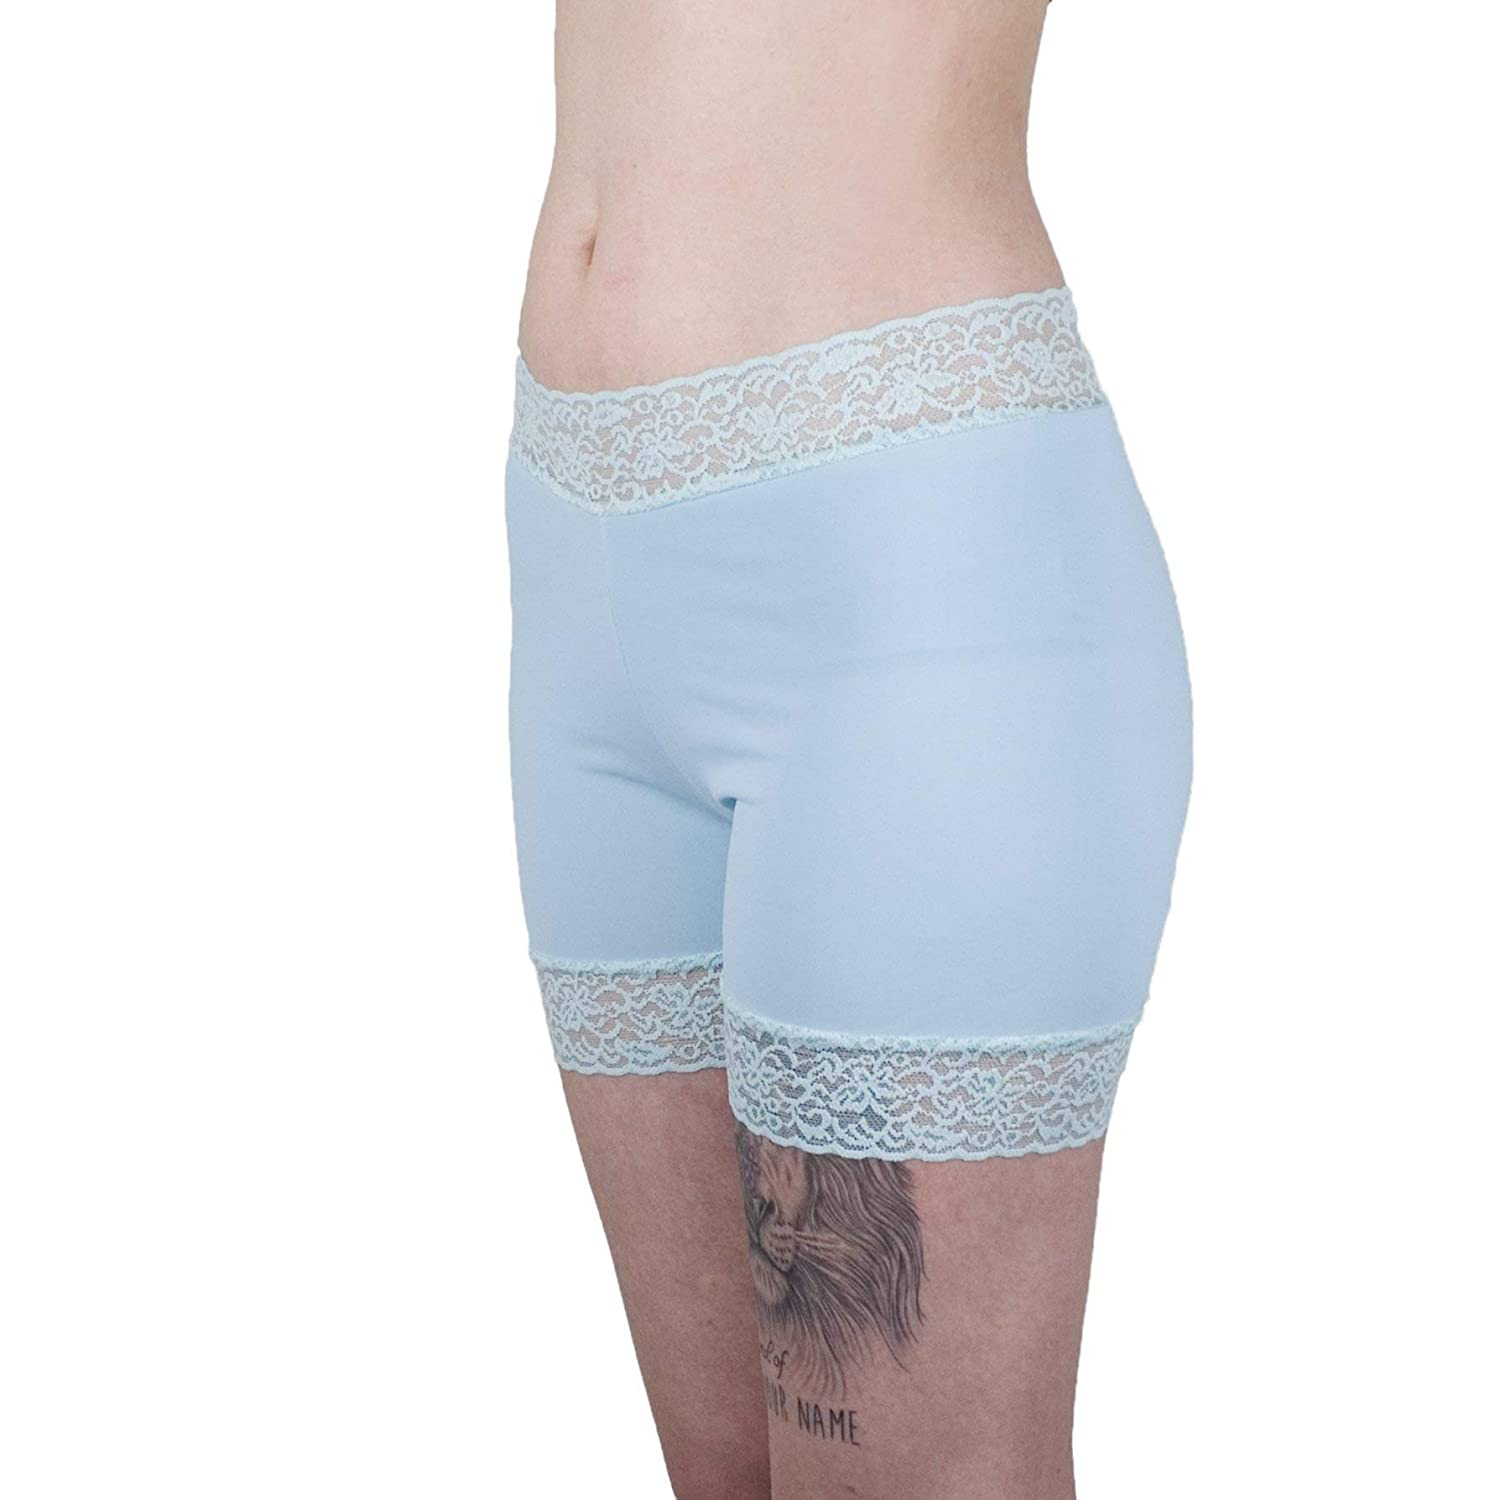 Mint Underpants Lace Trimmed Biker Shorts Women's Boxer Briefs